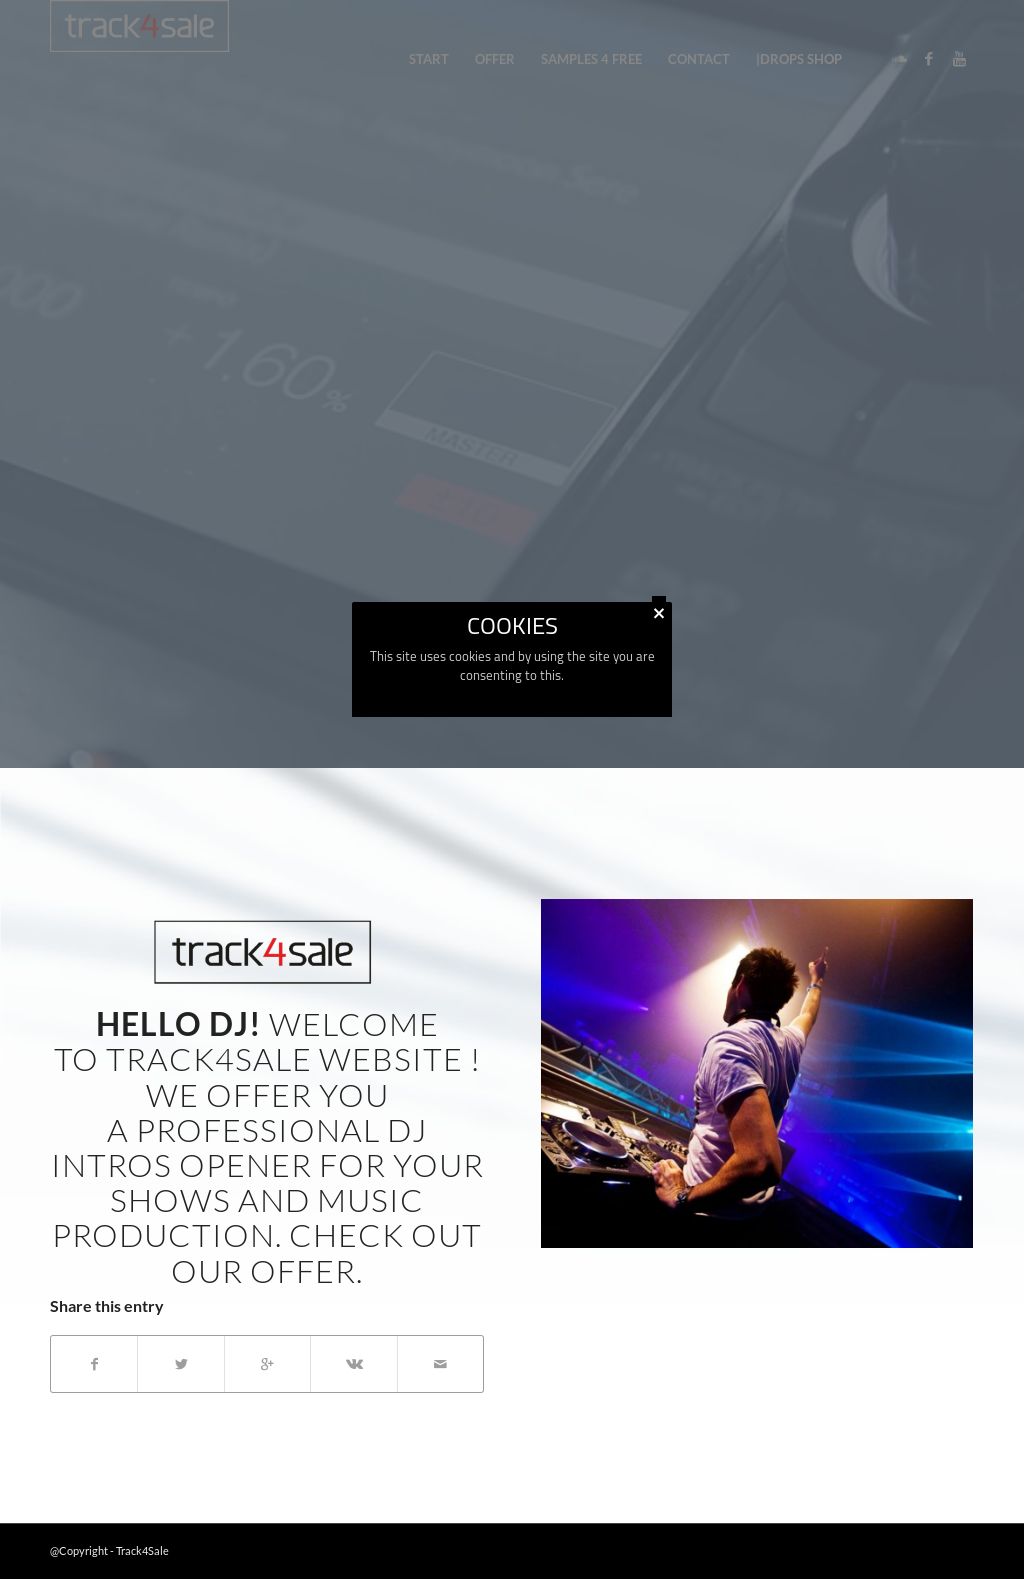 Track4sale Competitors, Revenue and Employees - Owler Company Profile